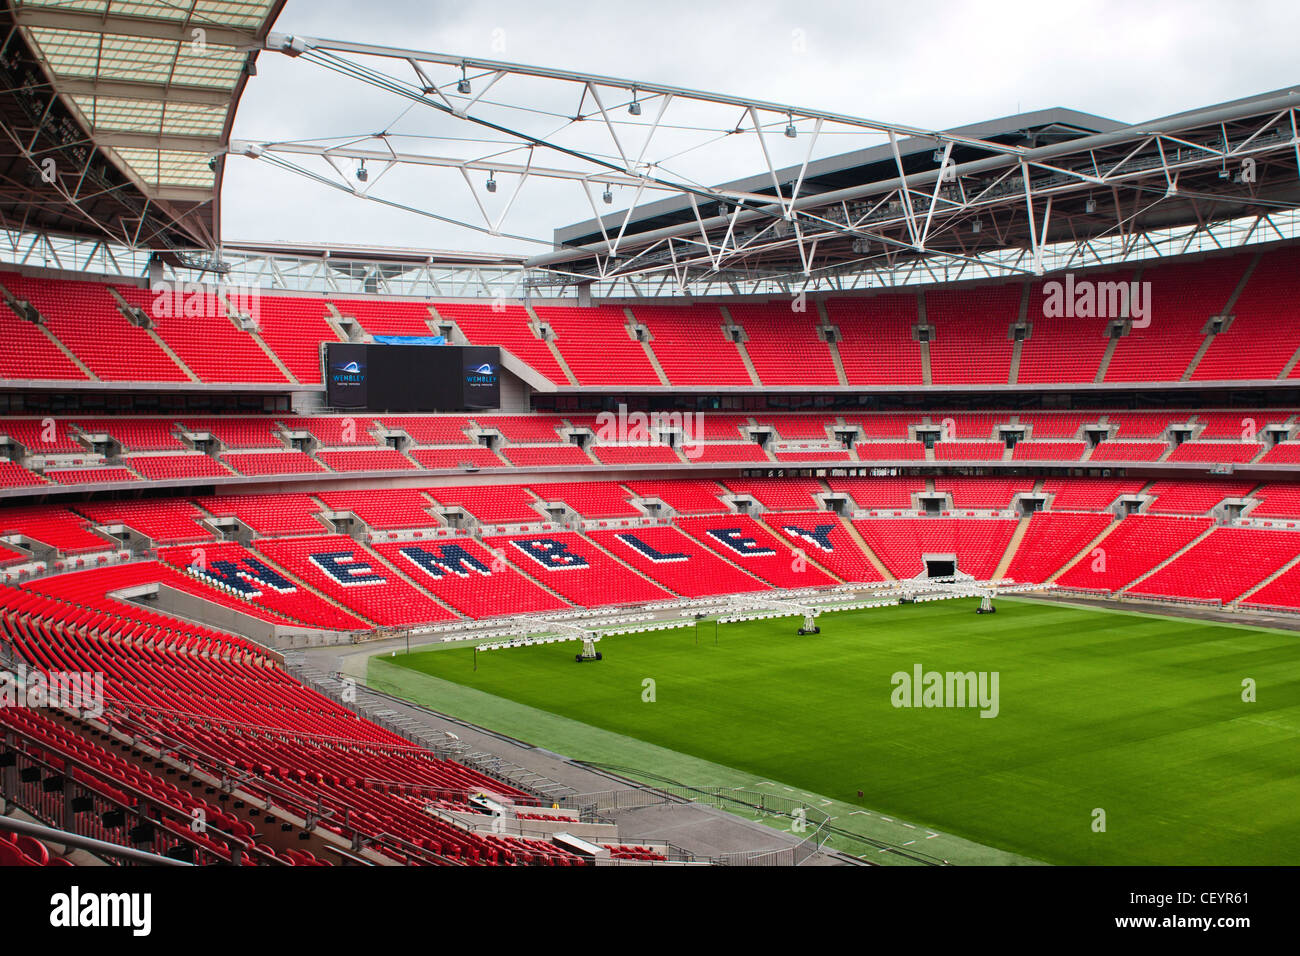 Internal shot of the new Wembley Stadium. 2012 London Olympic Venue and home of the England national football team. - Stock Image